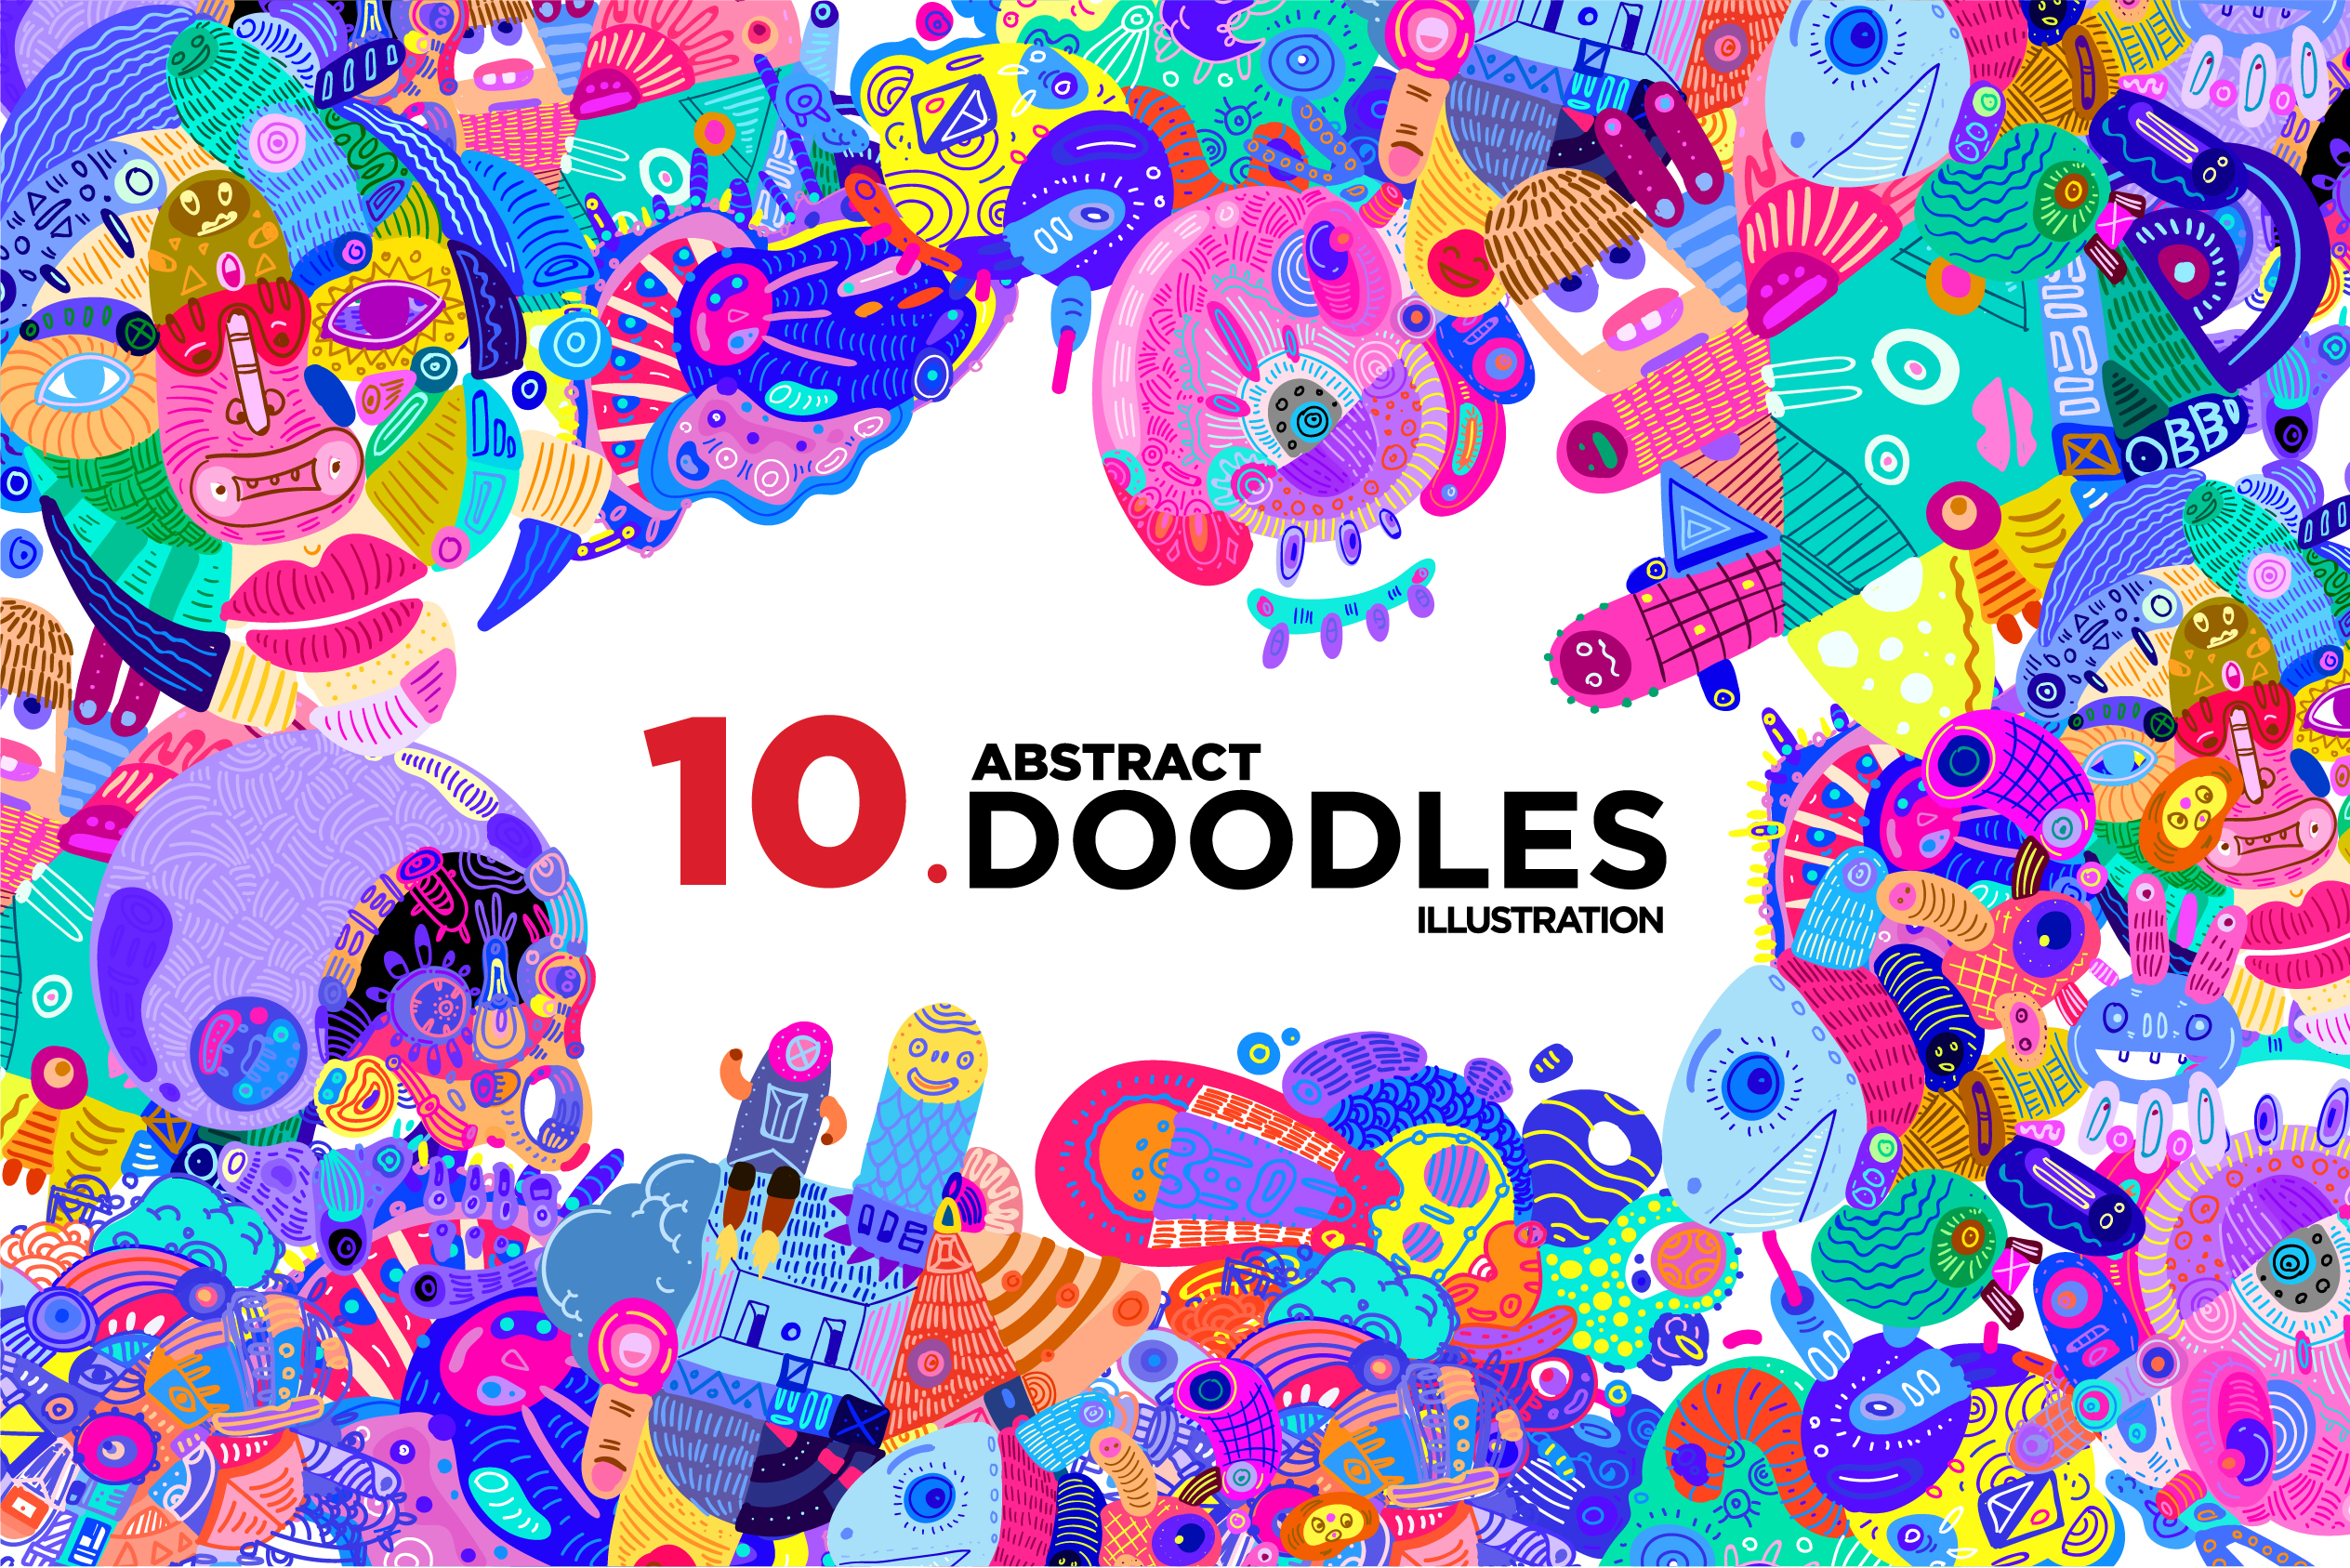 10 Abstract Doodle Illustrations example image 1